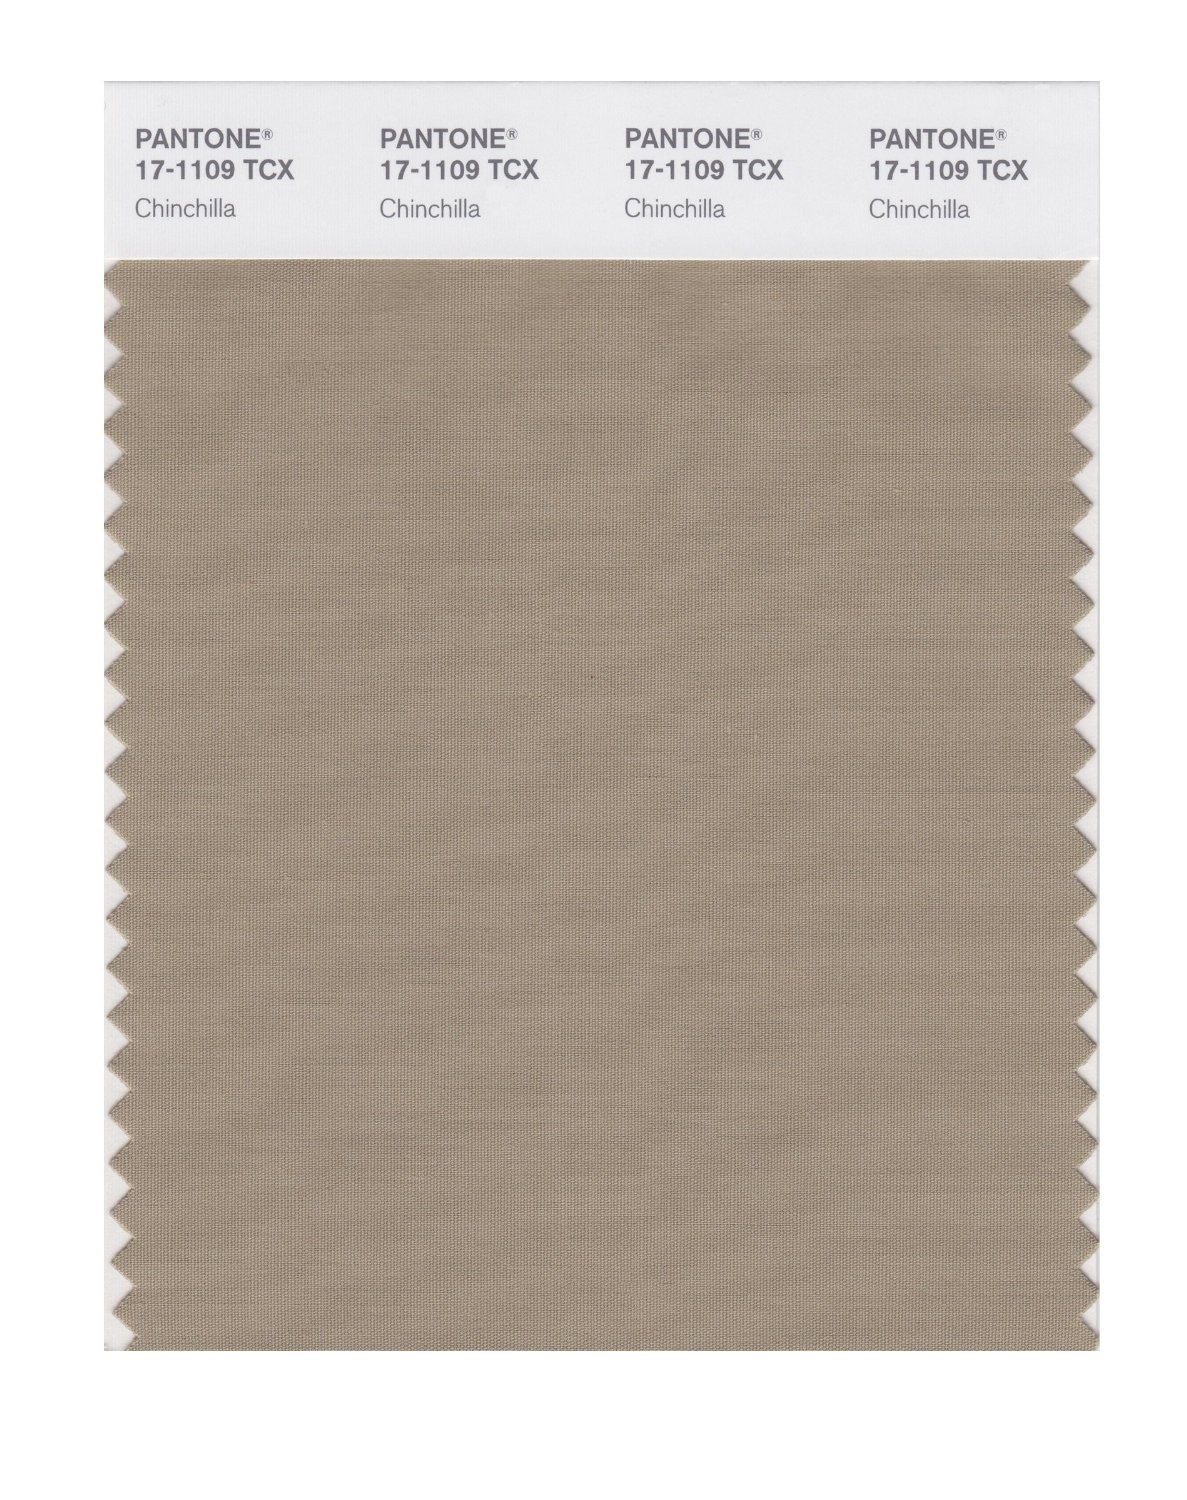 Pantone 17-1109 TCX Swatch Card Chinchilla